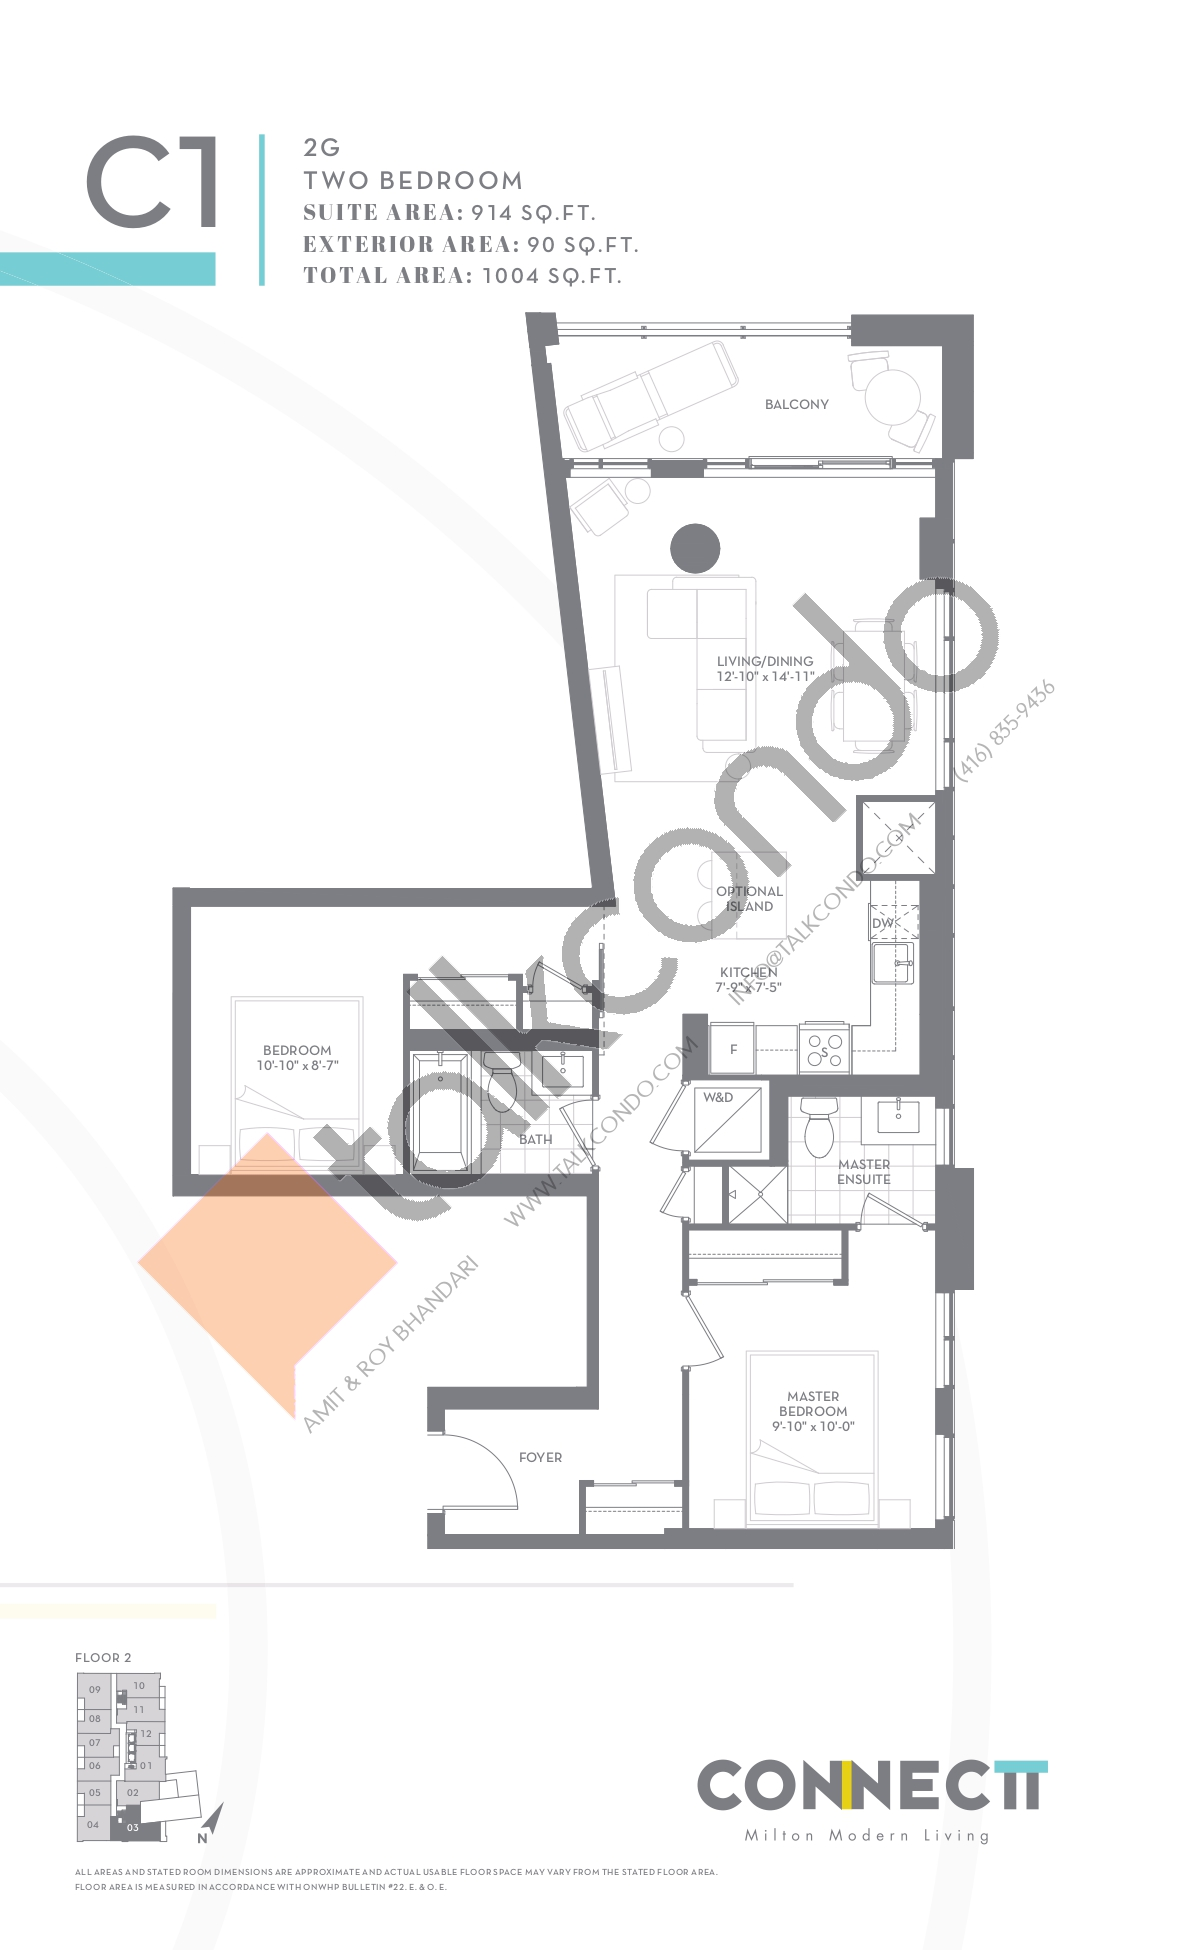 2G Floor Plan at Connectt Urban Community Condos - 914 sq.ft